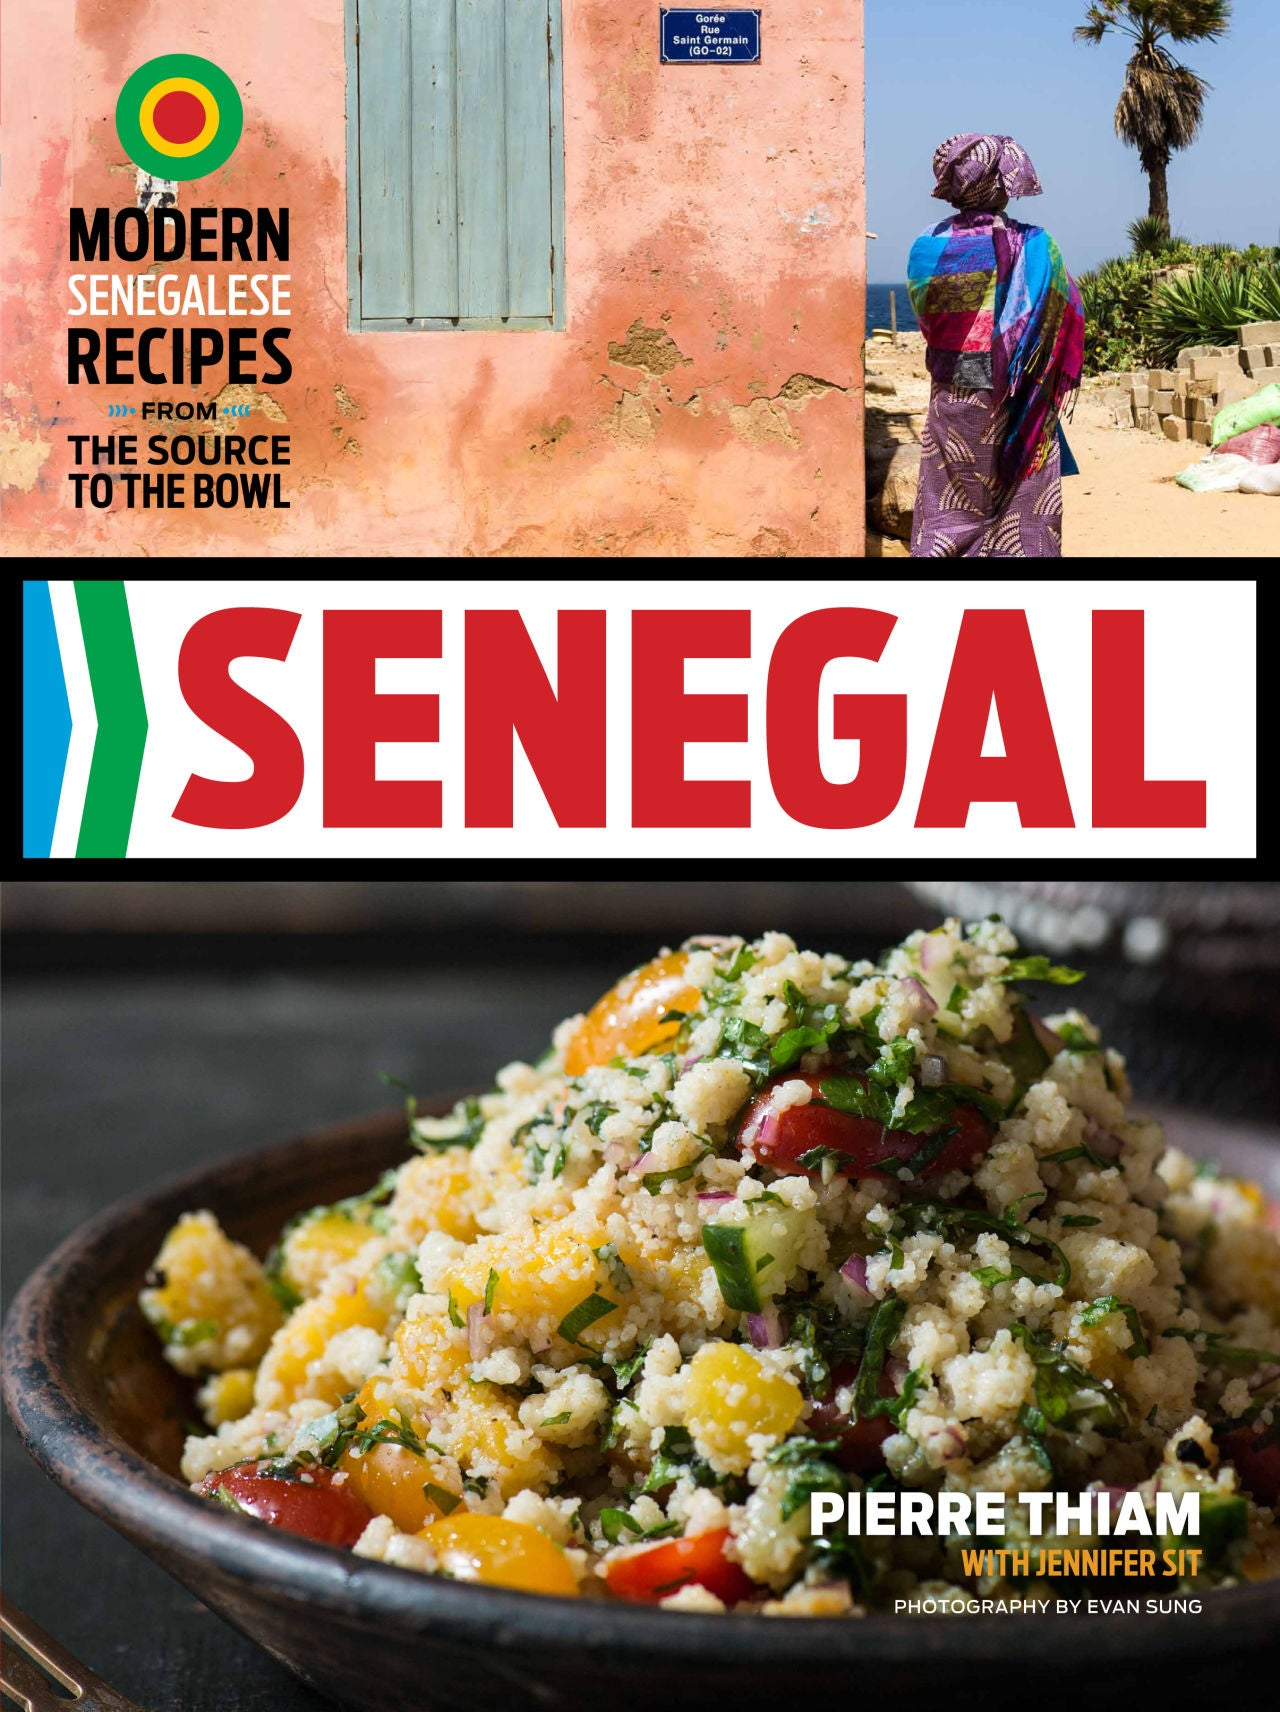 Senegal: Modern Senegalese Recipes from the Source to the Bowl, by Pierre Thiam and Jennifer Sit